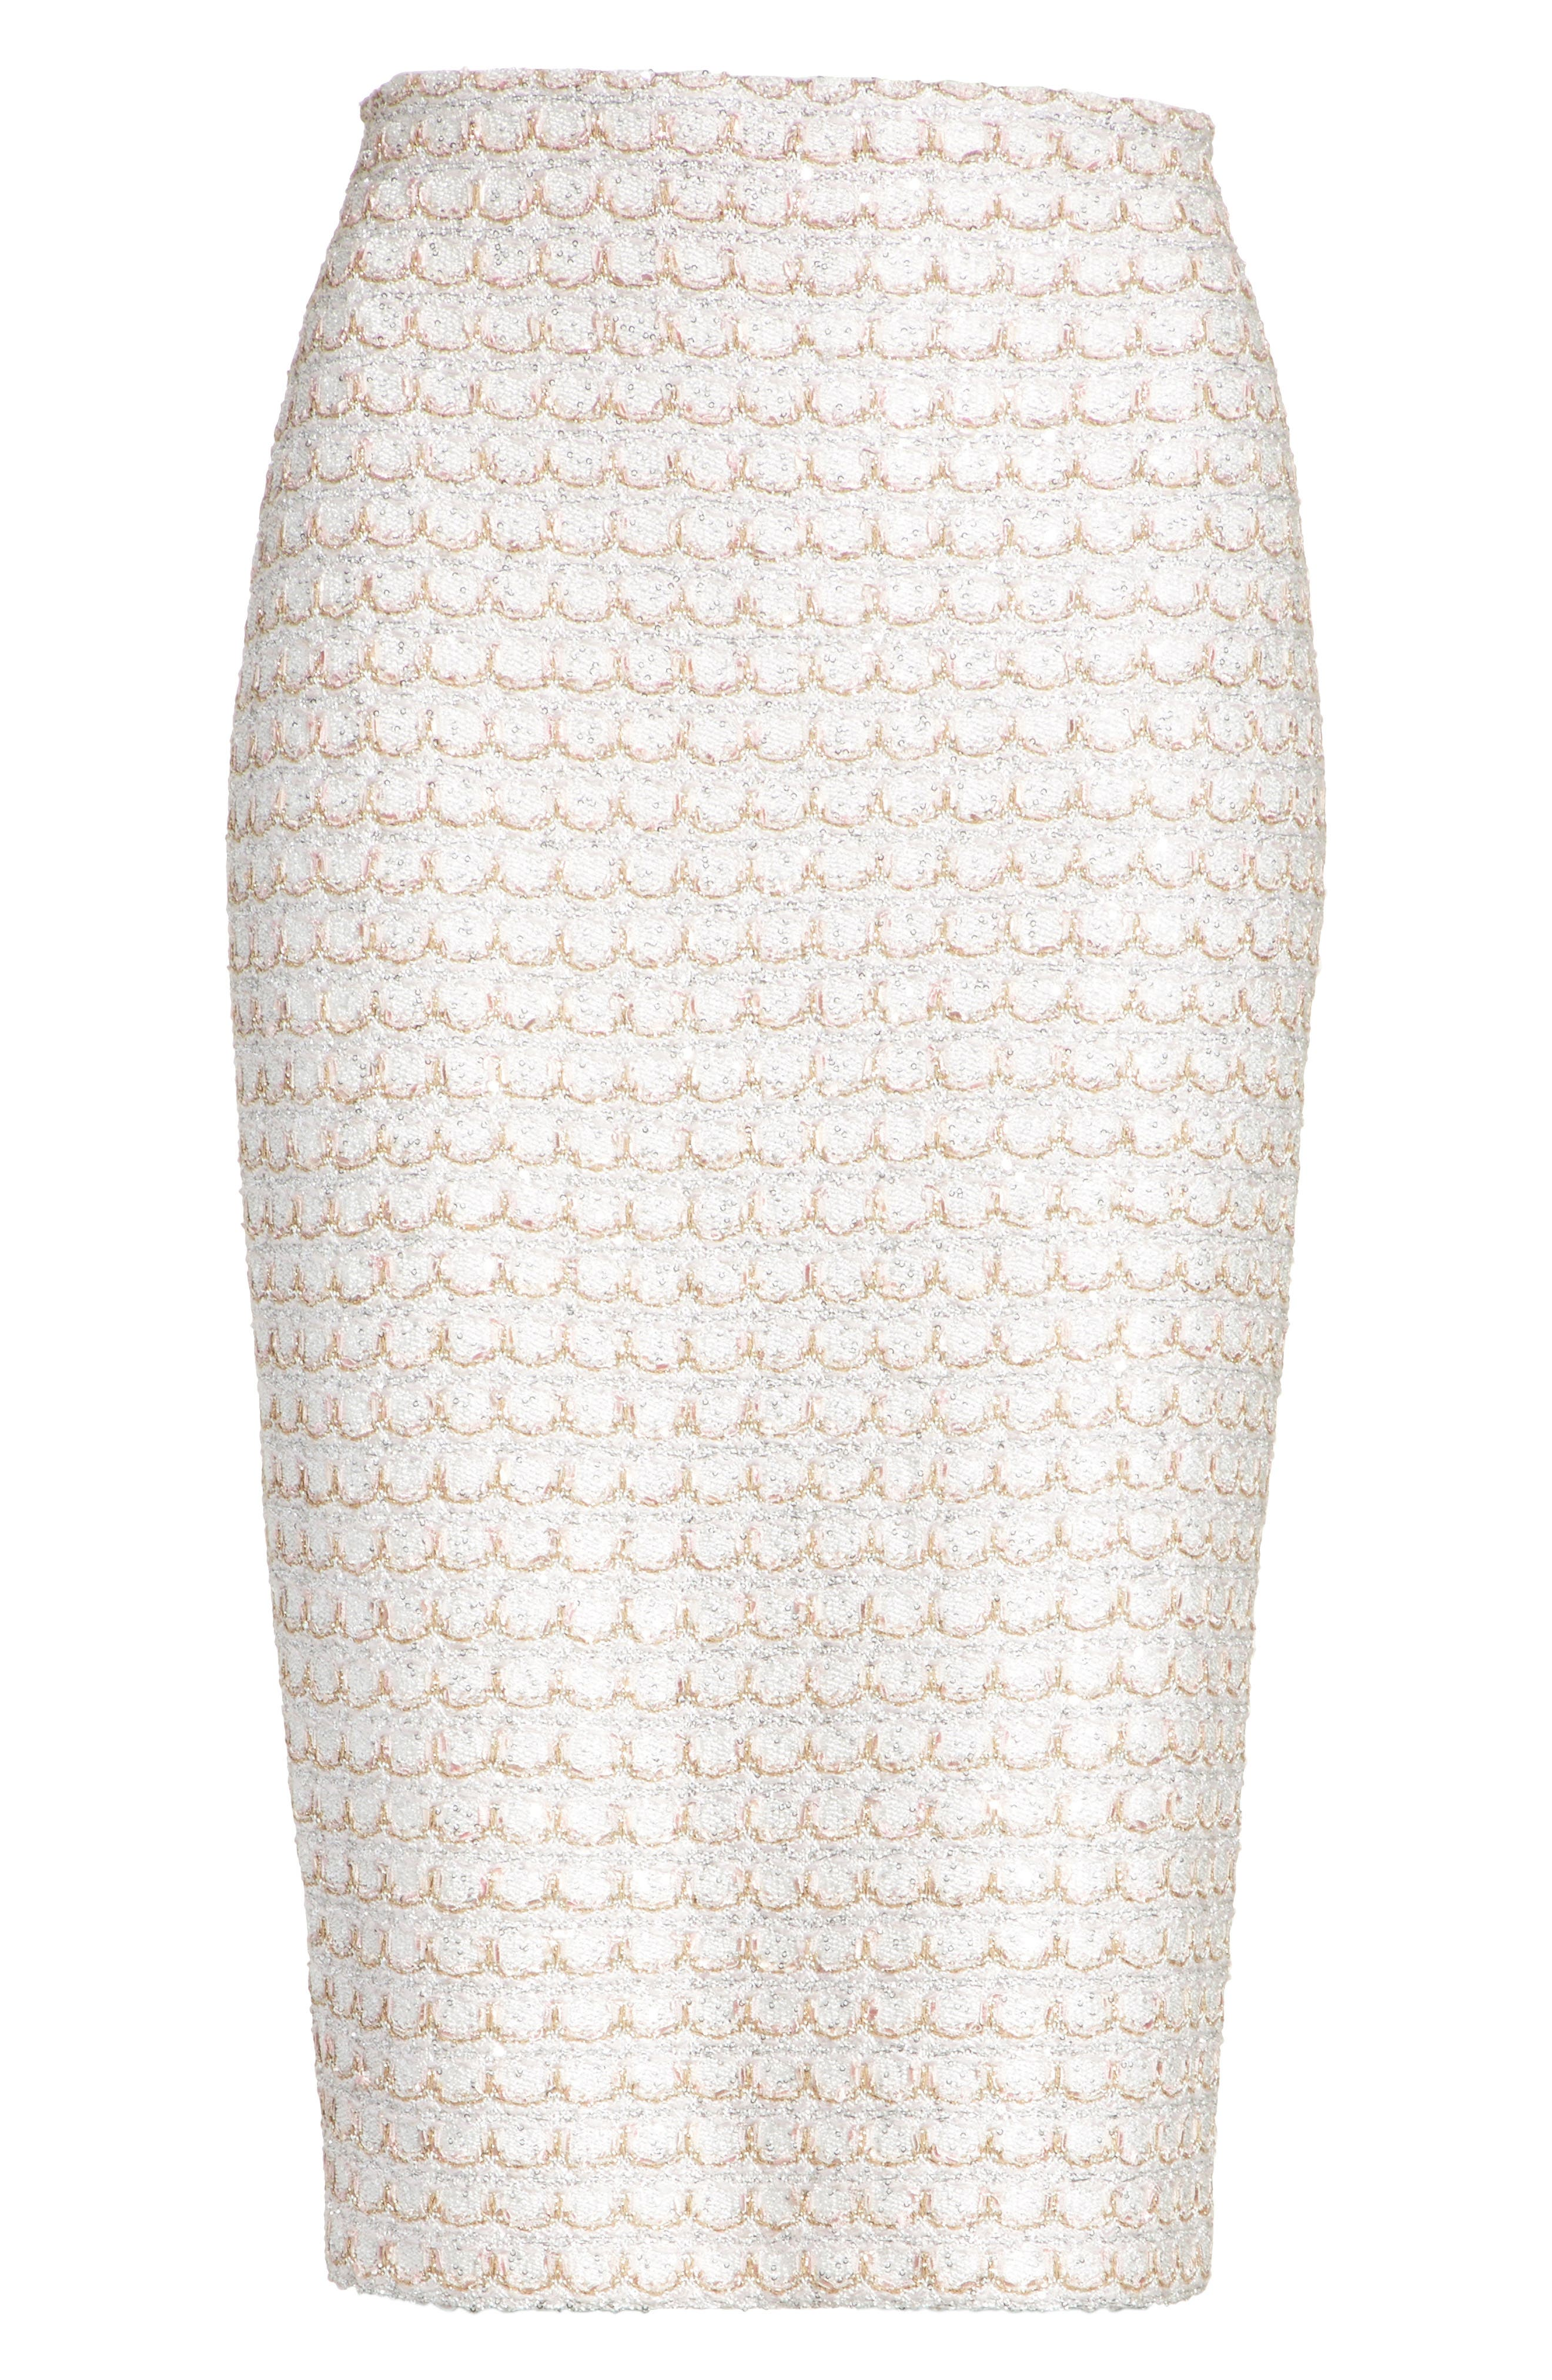 Sequin Scallop Tweed Pencil Skirt,                             Alternate thumbnail 6, color,                             100